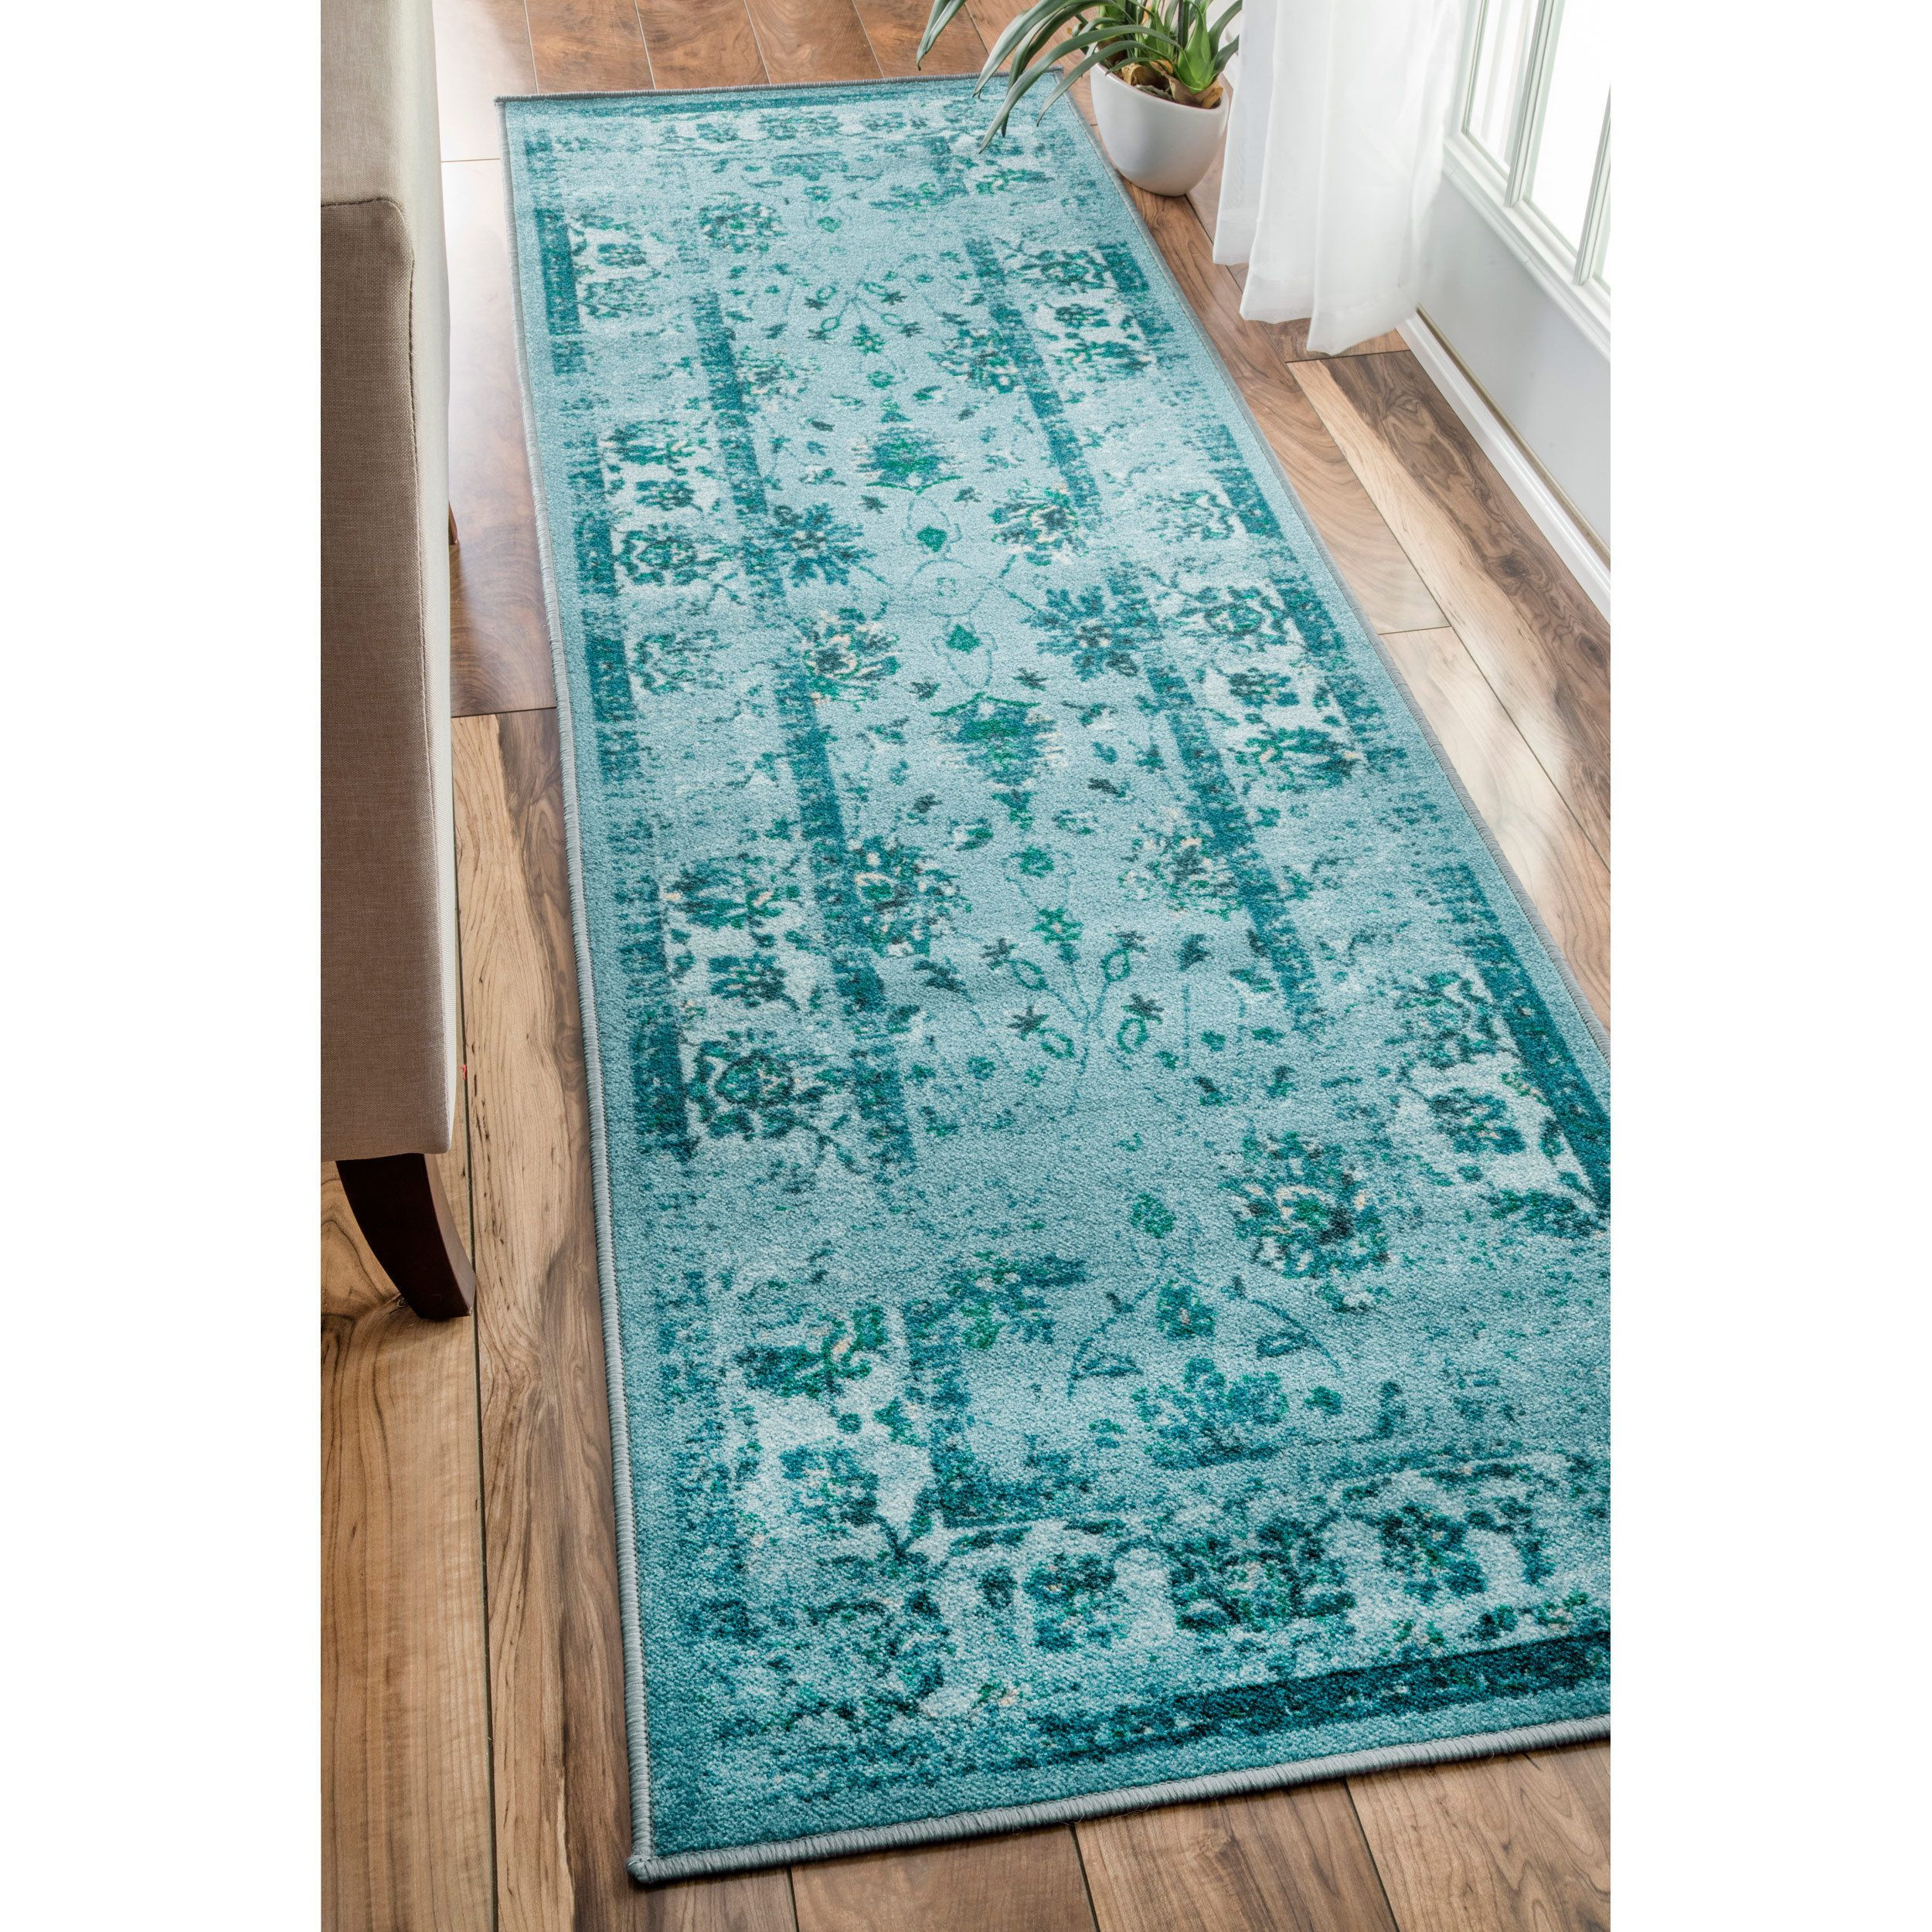 Vibrant Overdyed Rugs These Machine Woven Rugs Are Easy